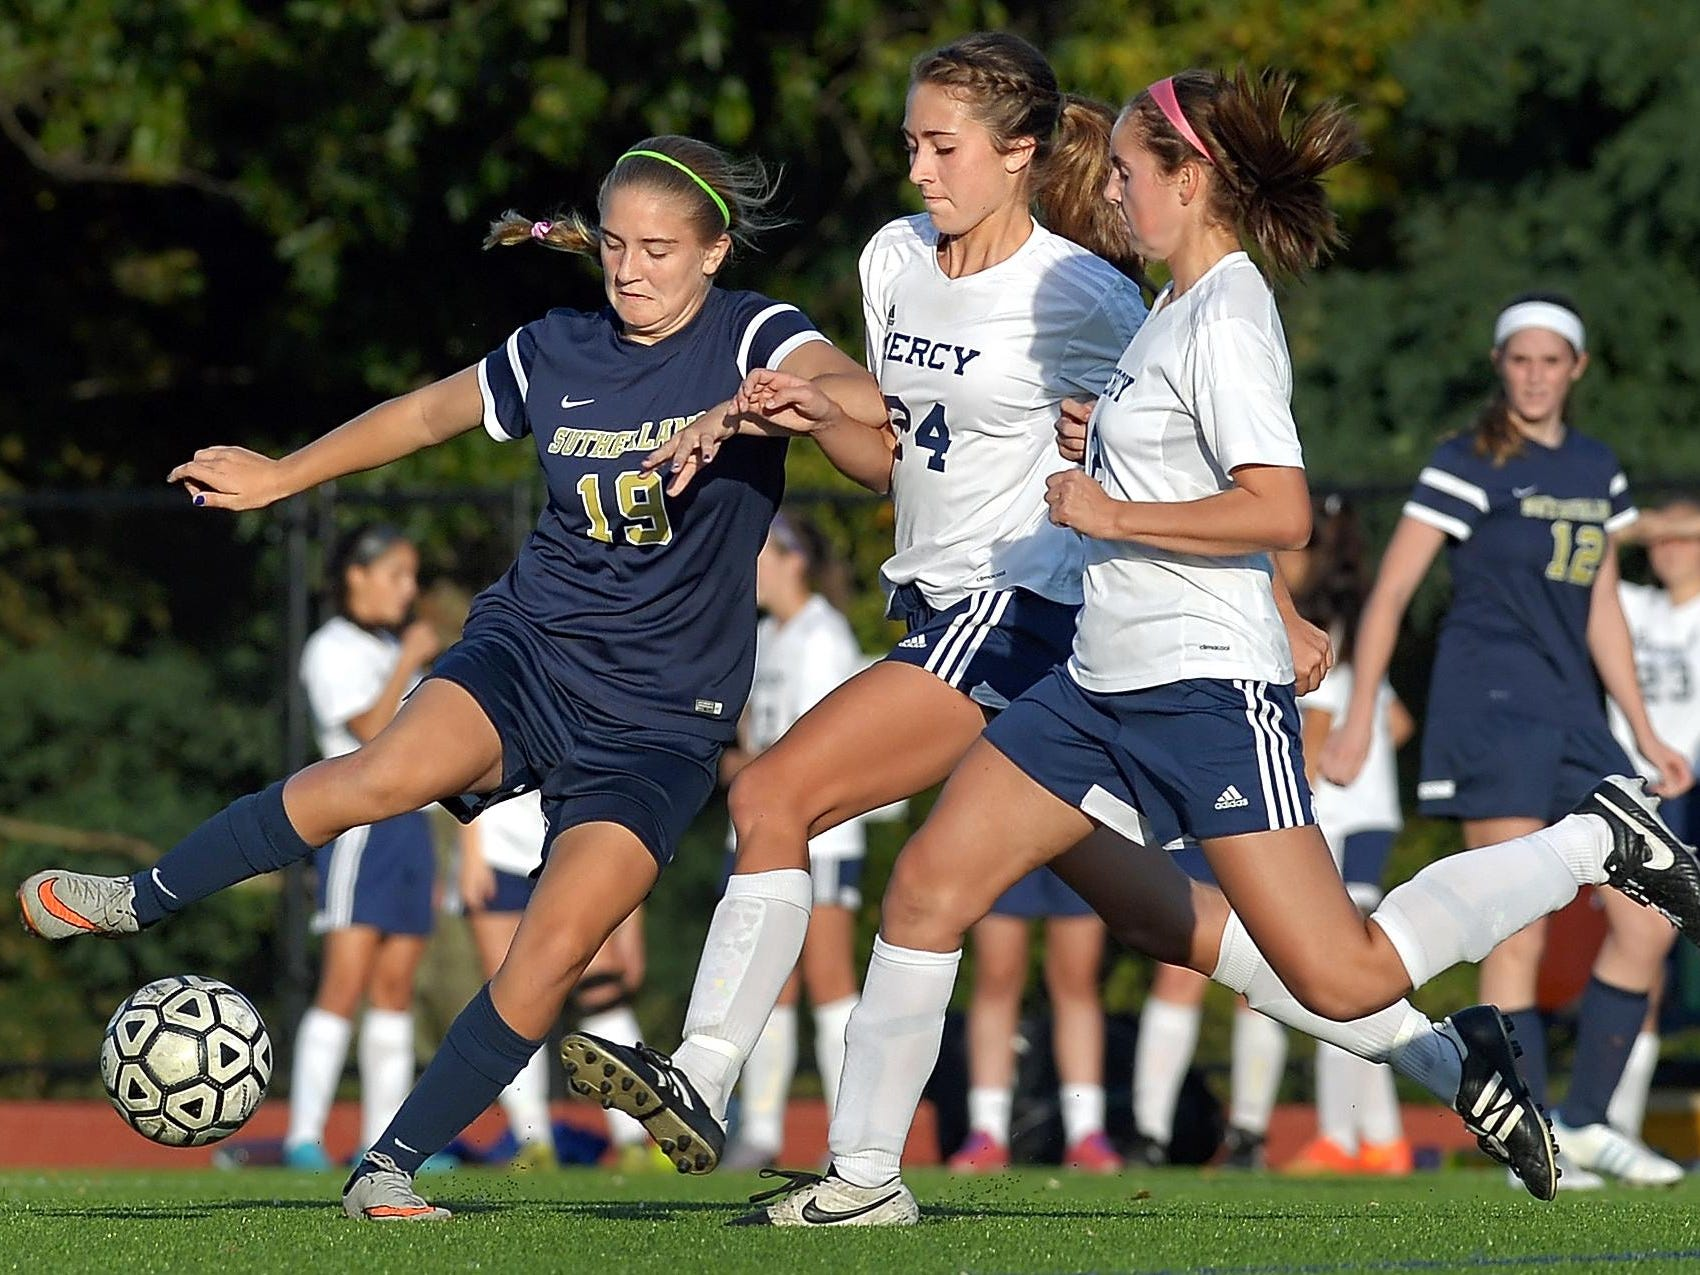 Pittsford Sutherland's Grace Allen, left, tries to control the ball while pressured by Mercy's Aileen Dalton, center, and Diana Colpoys.